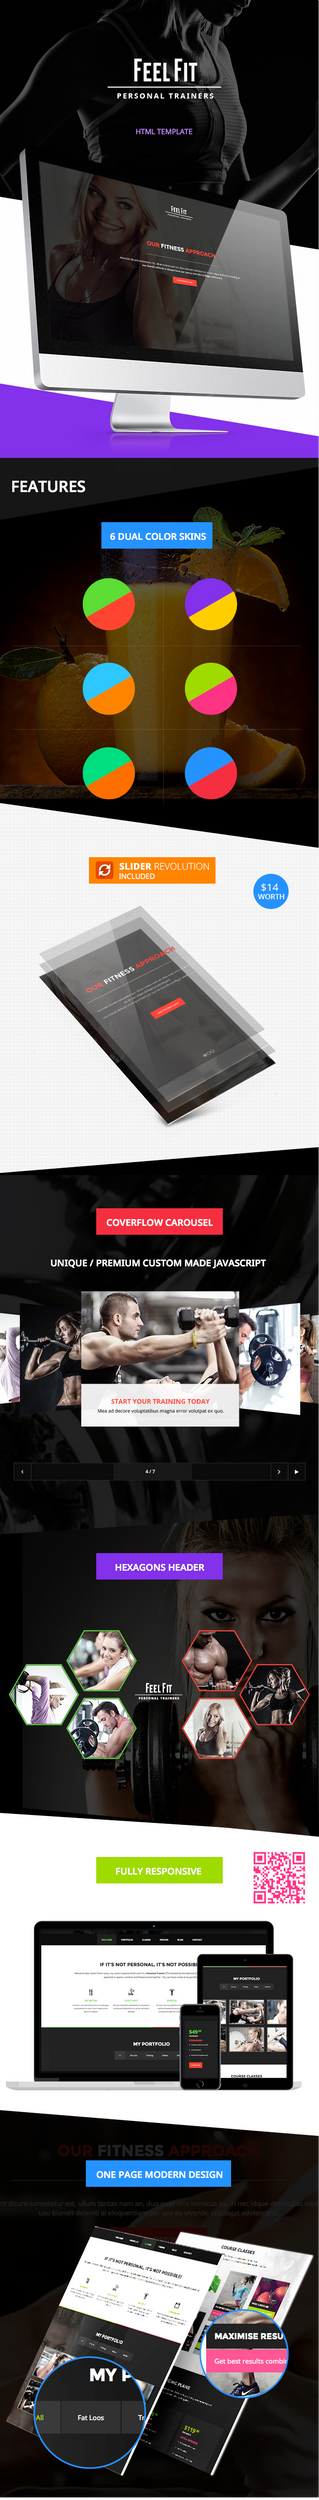 Personal Trainer - One Page HTML5 Template by Alexandra-Ipate